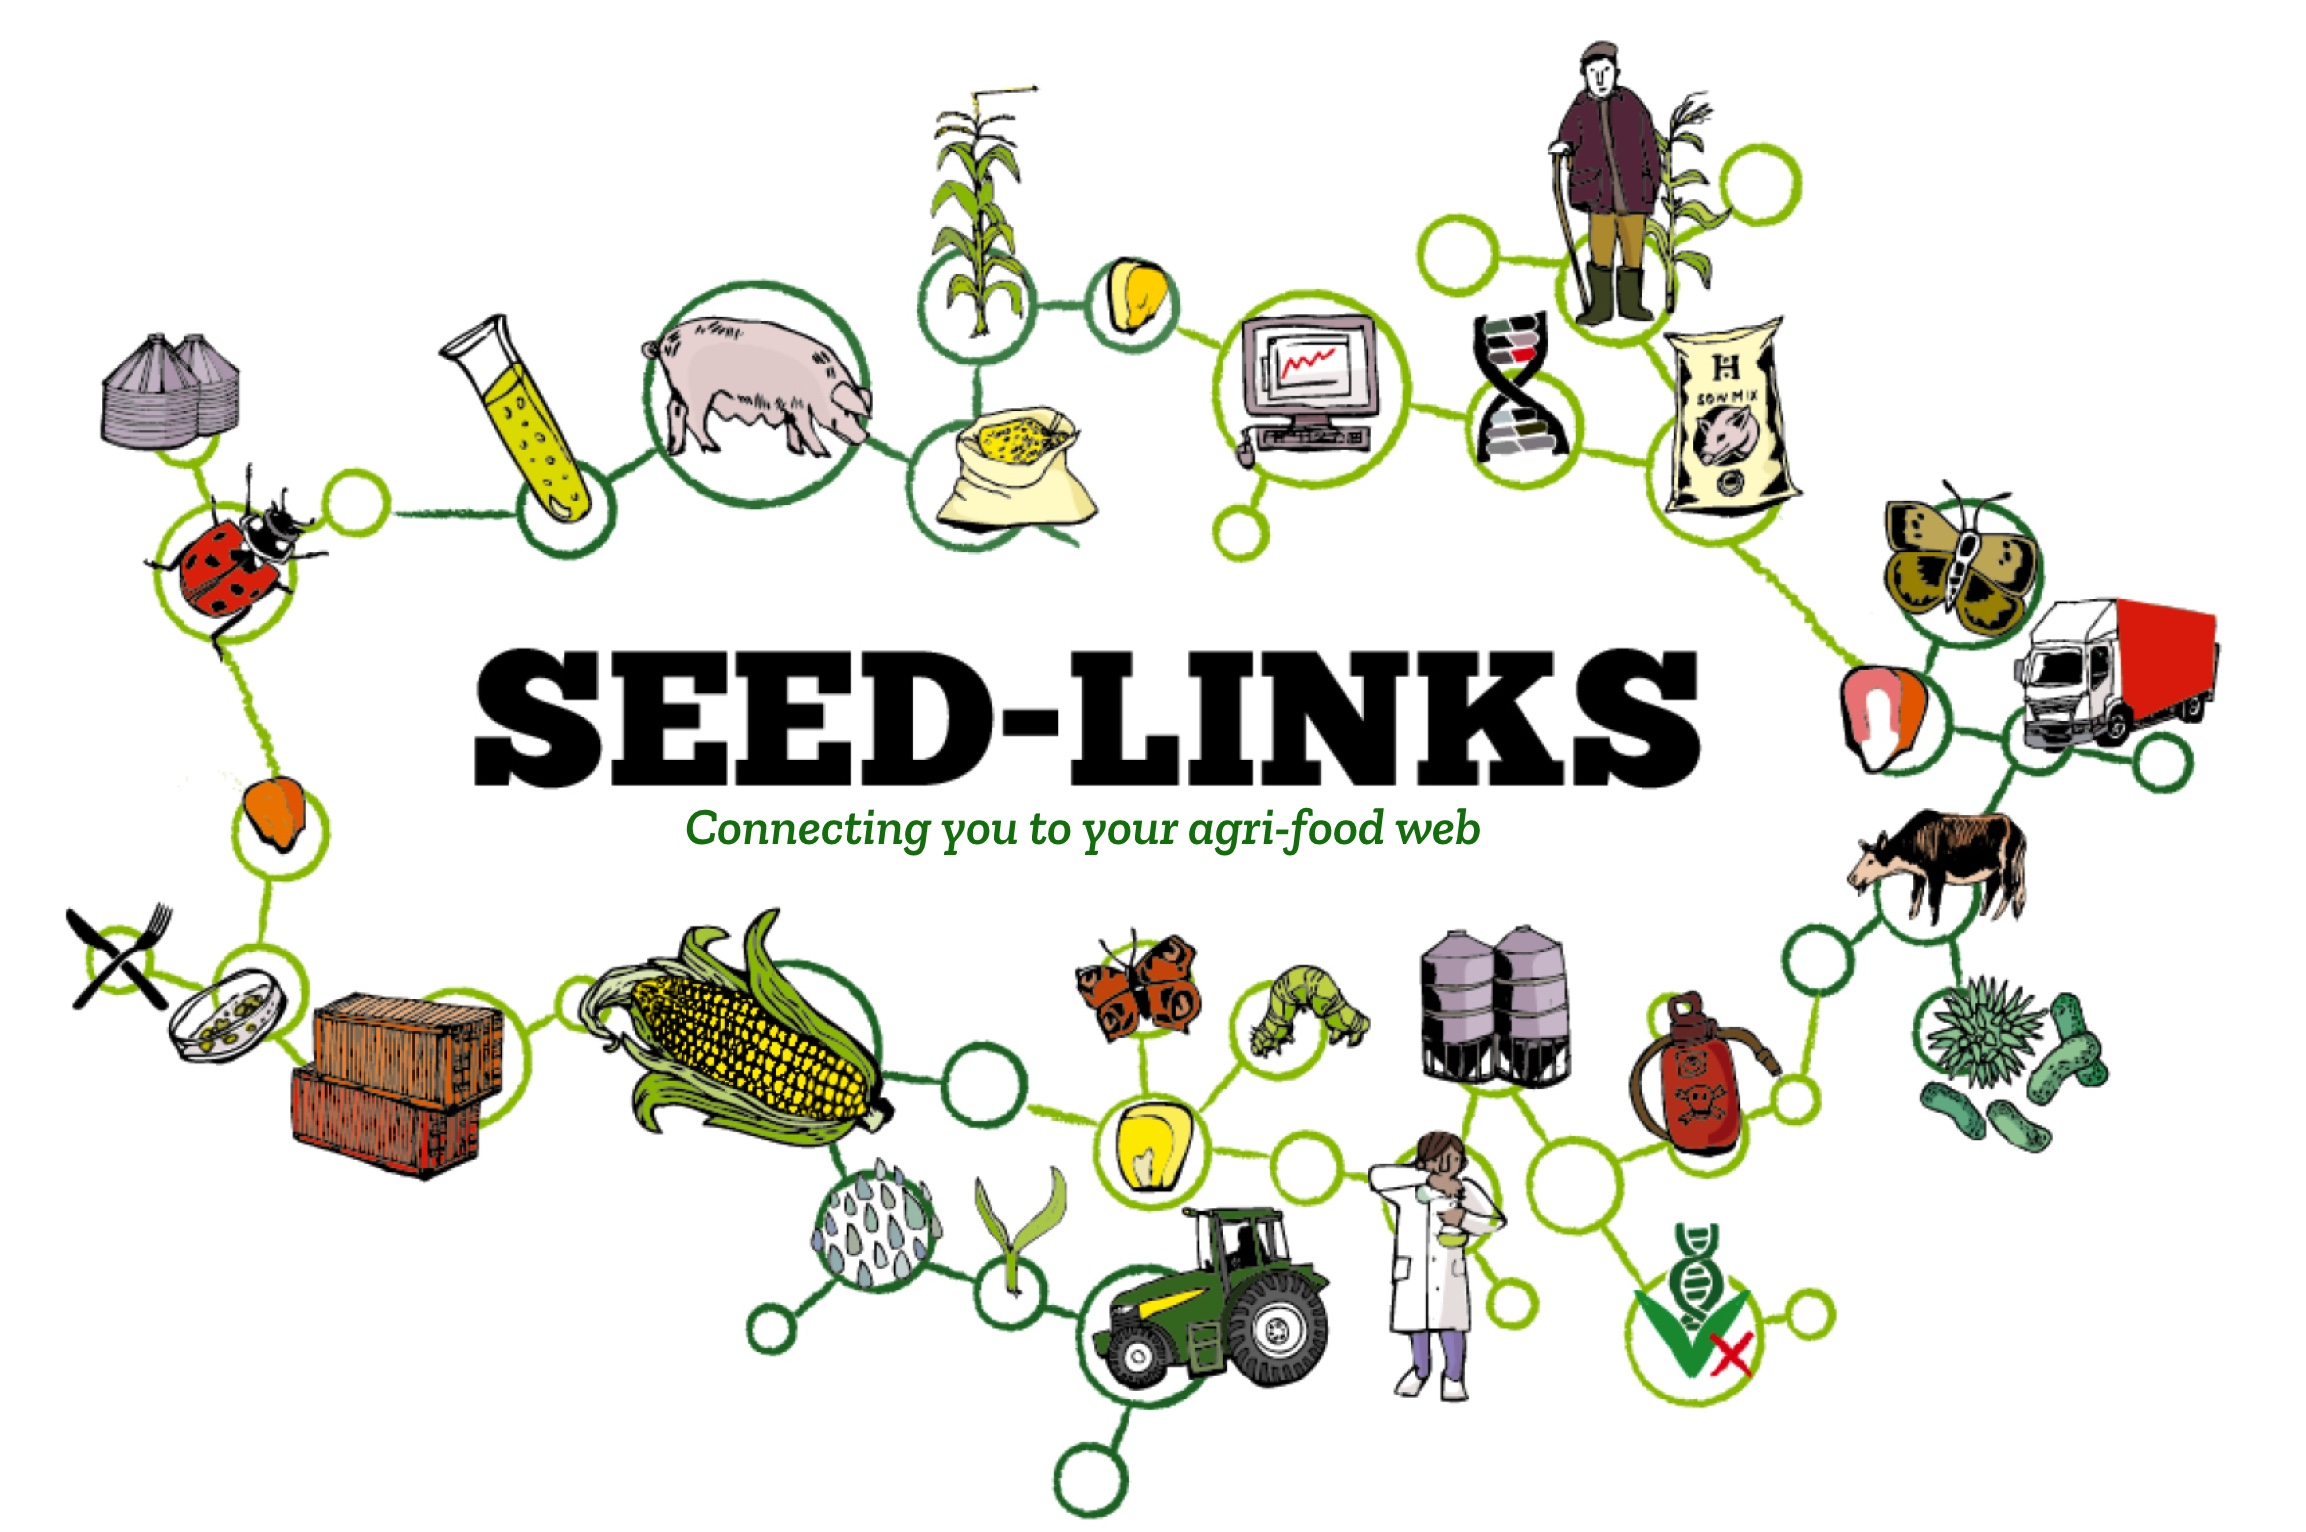 Seed-Links - Connecting you to your agri-food web